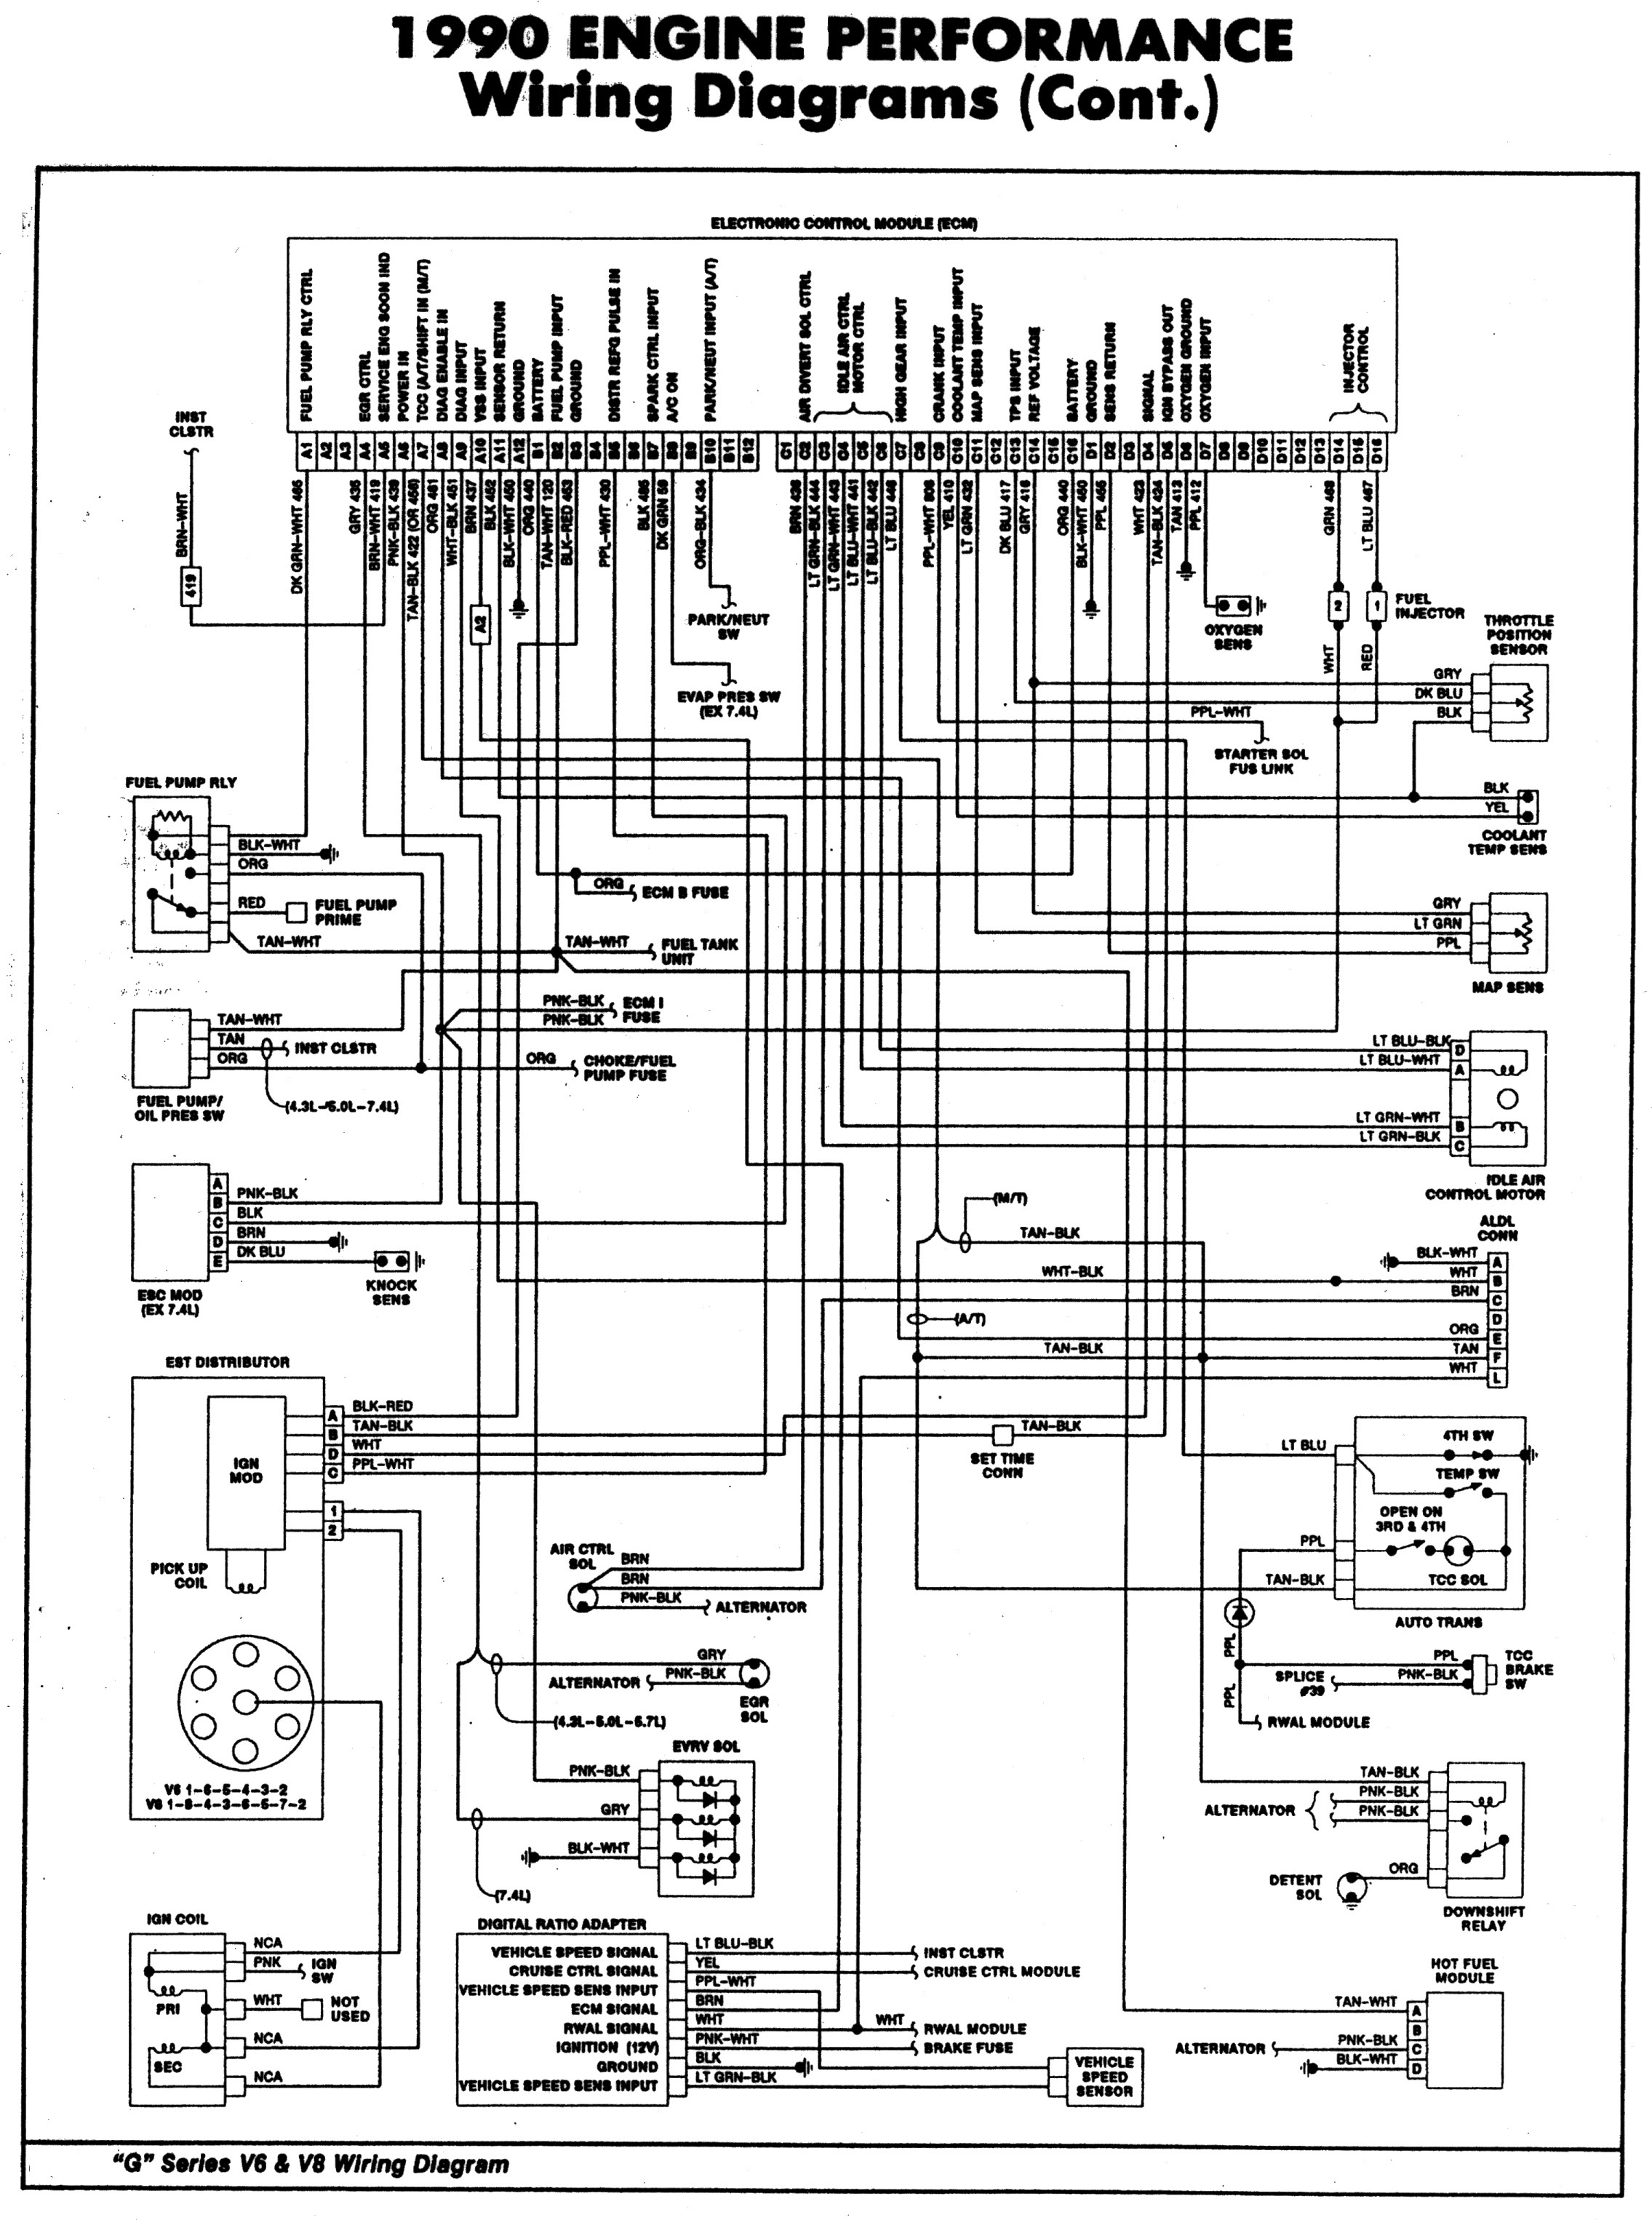 ignitiondiagram 1990 chevy suburban tbi 350 installation land interior wiring diagram for 1990 suburban [ 2271 x 3051 Pixel ]